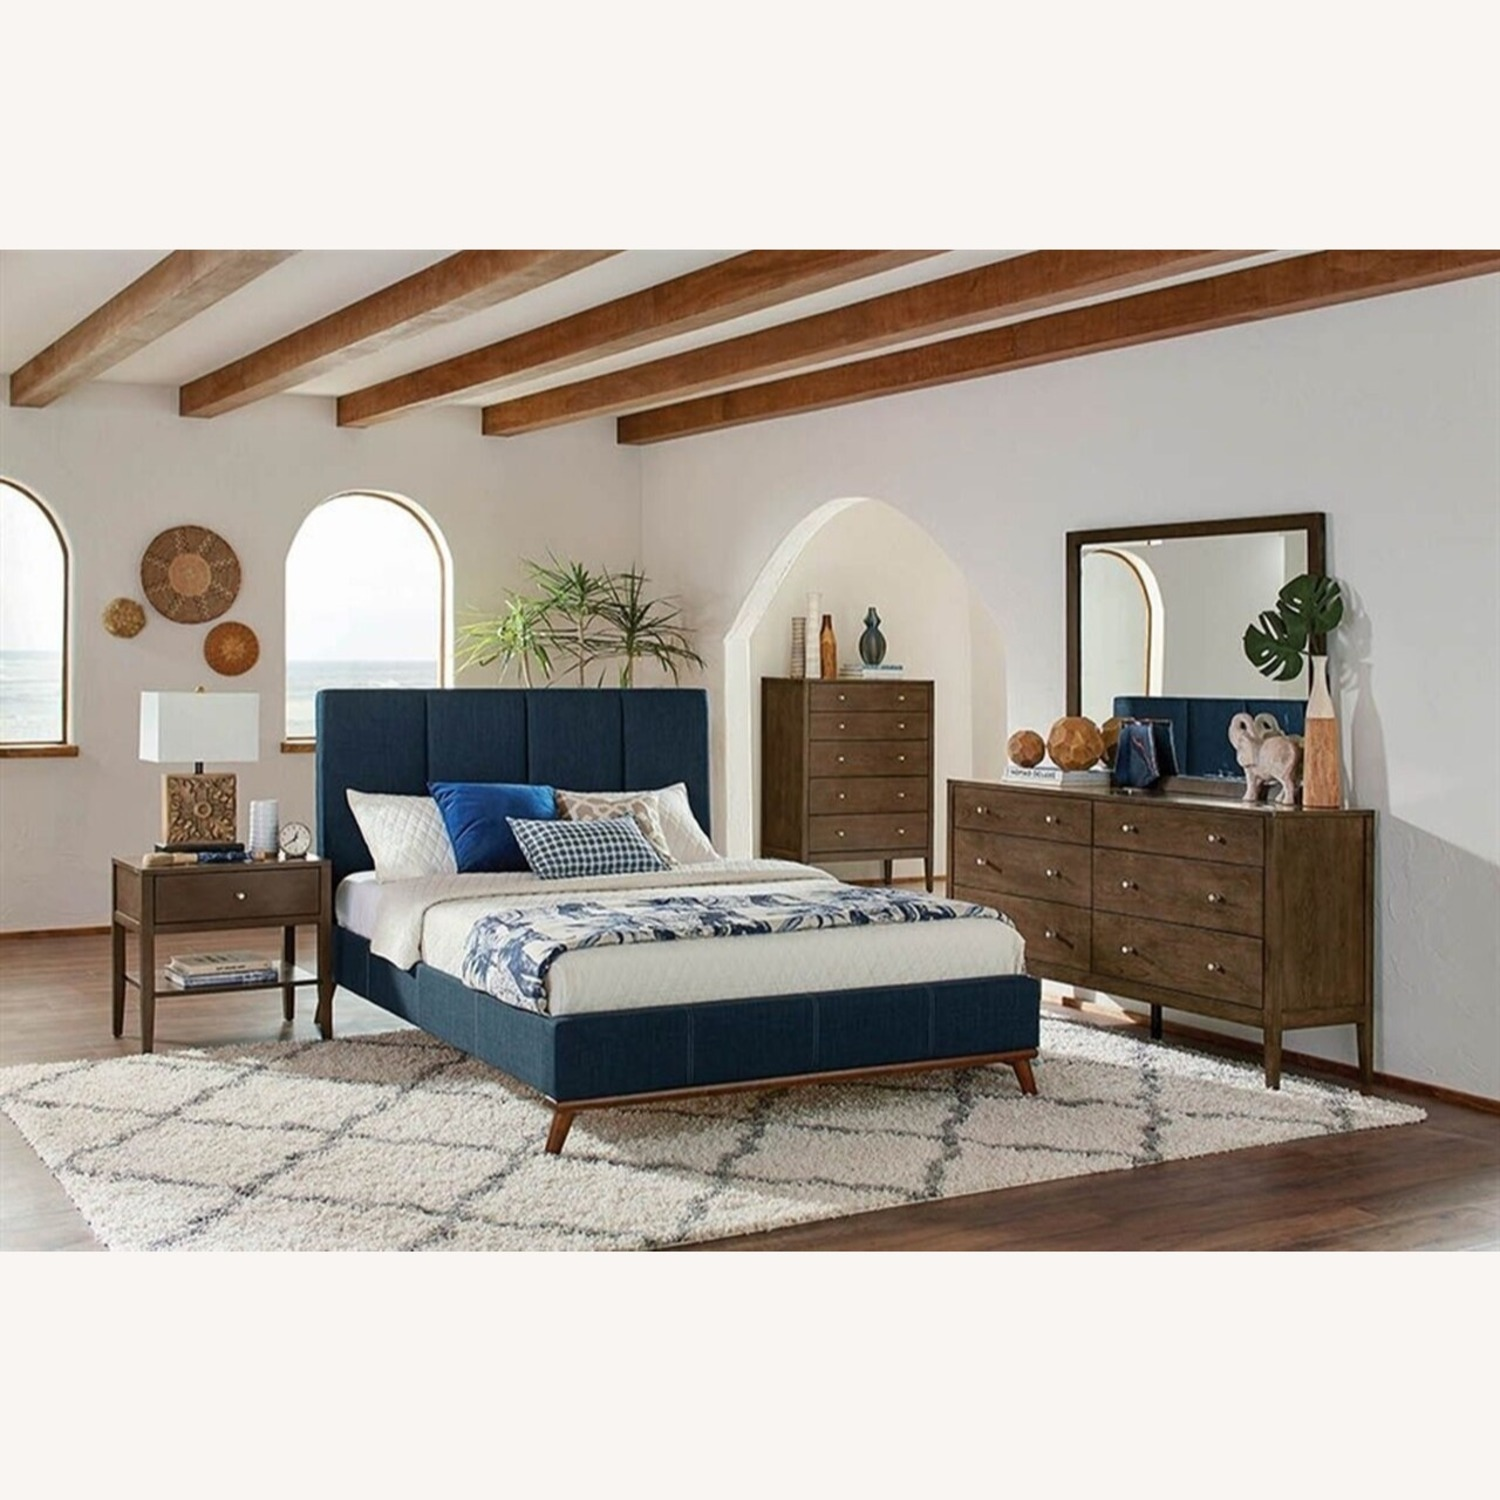 Mid Century Queen Bed In A Blue Fabric Finish - image-3